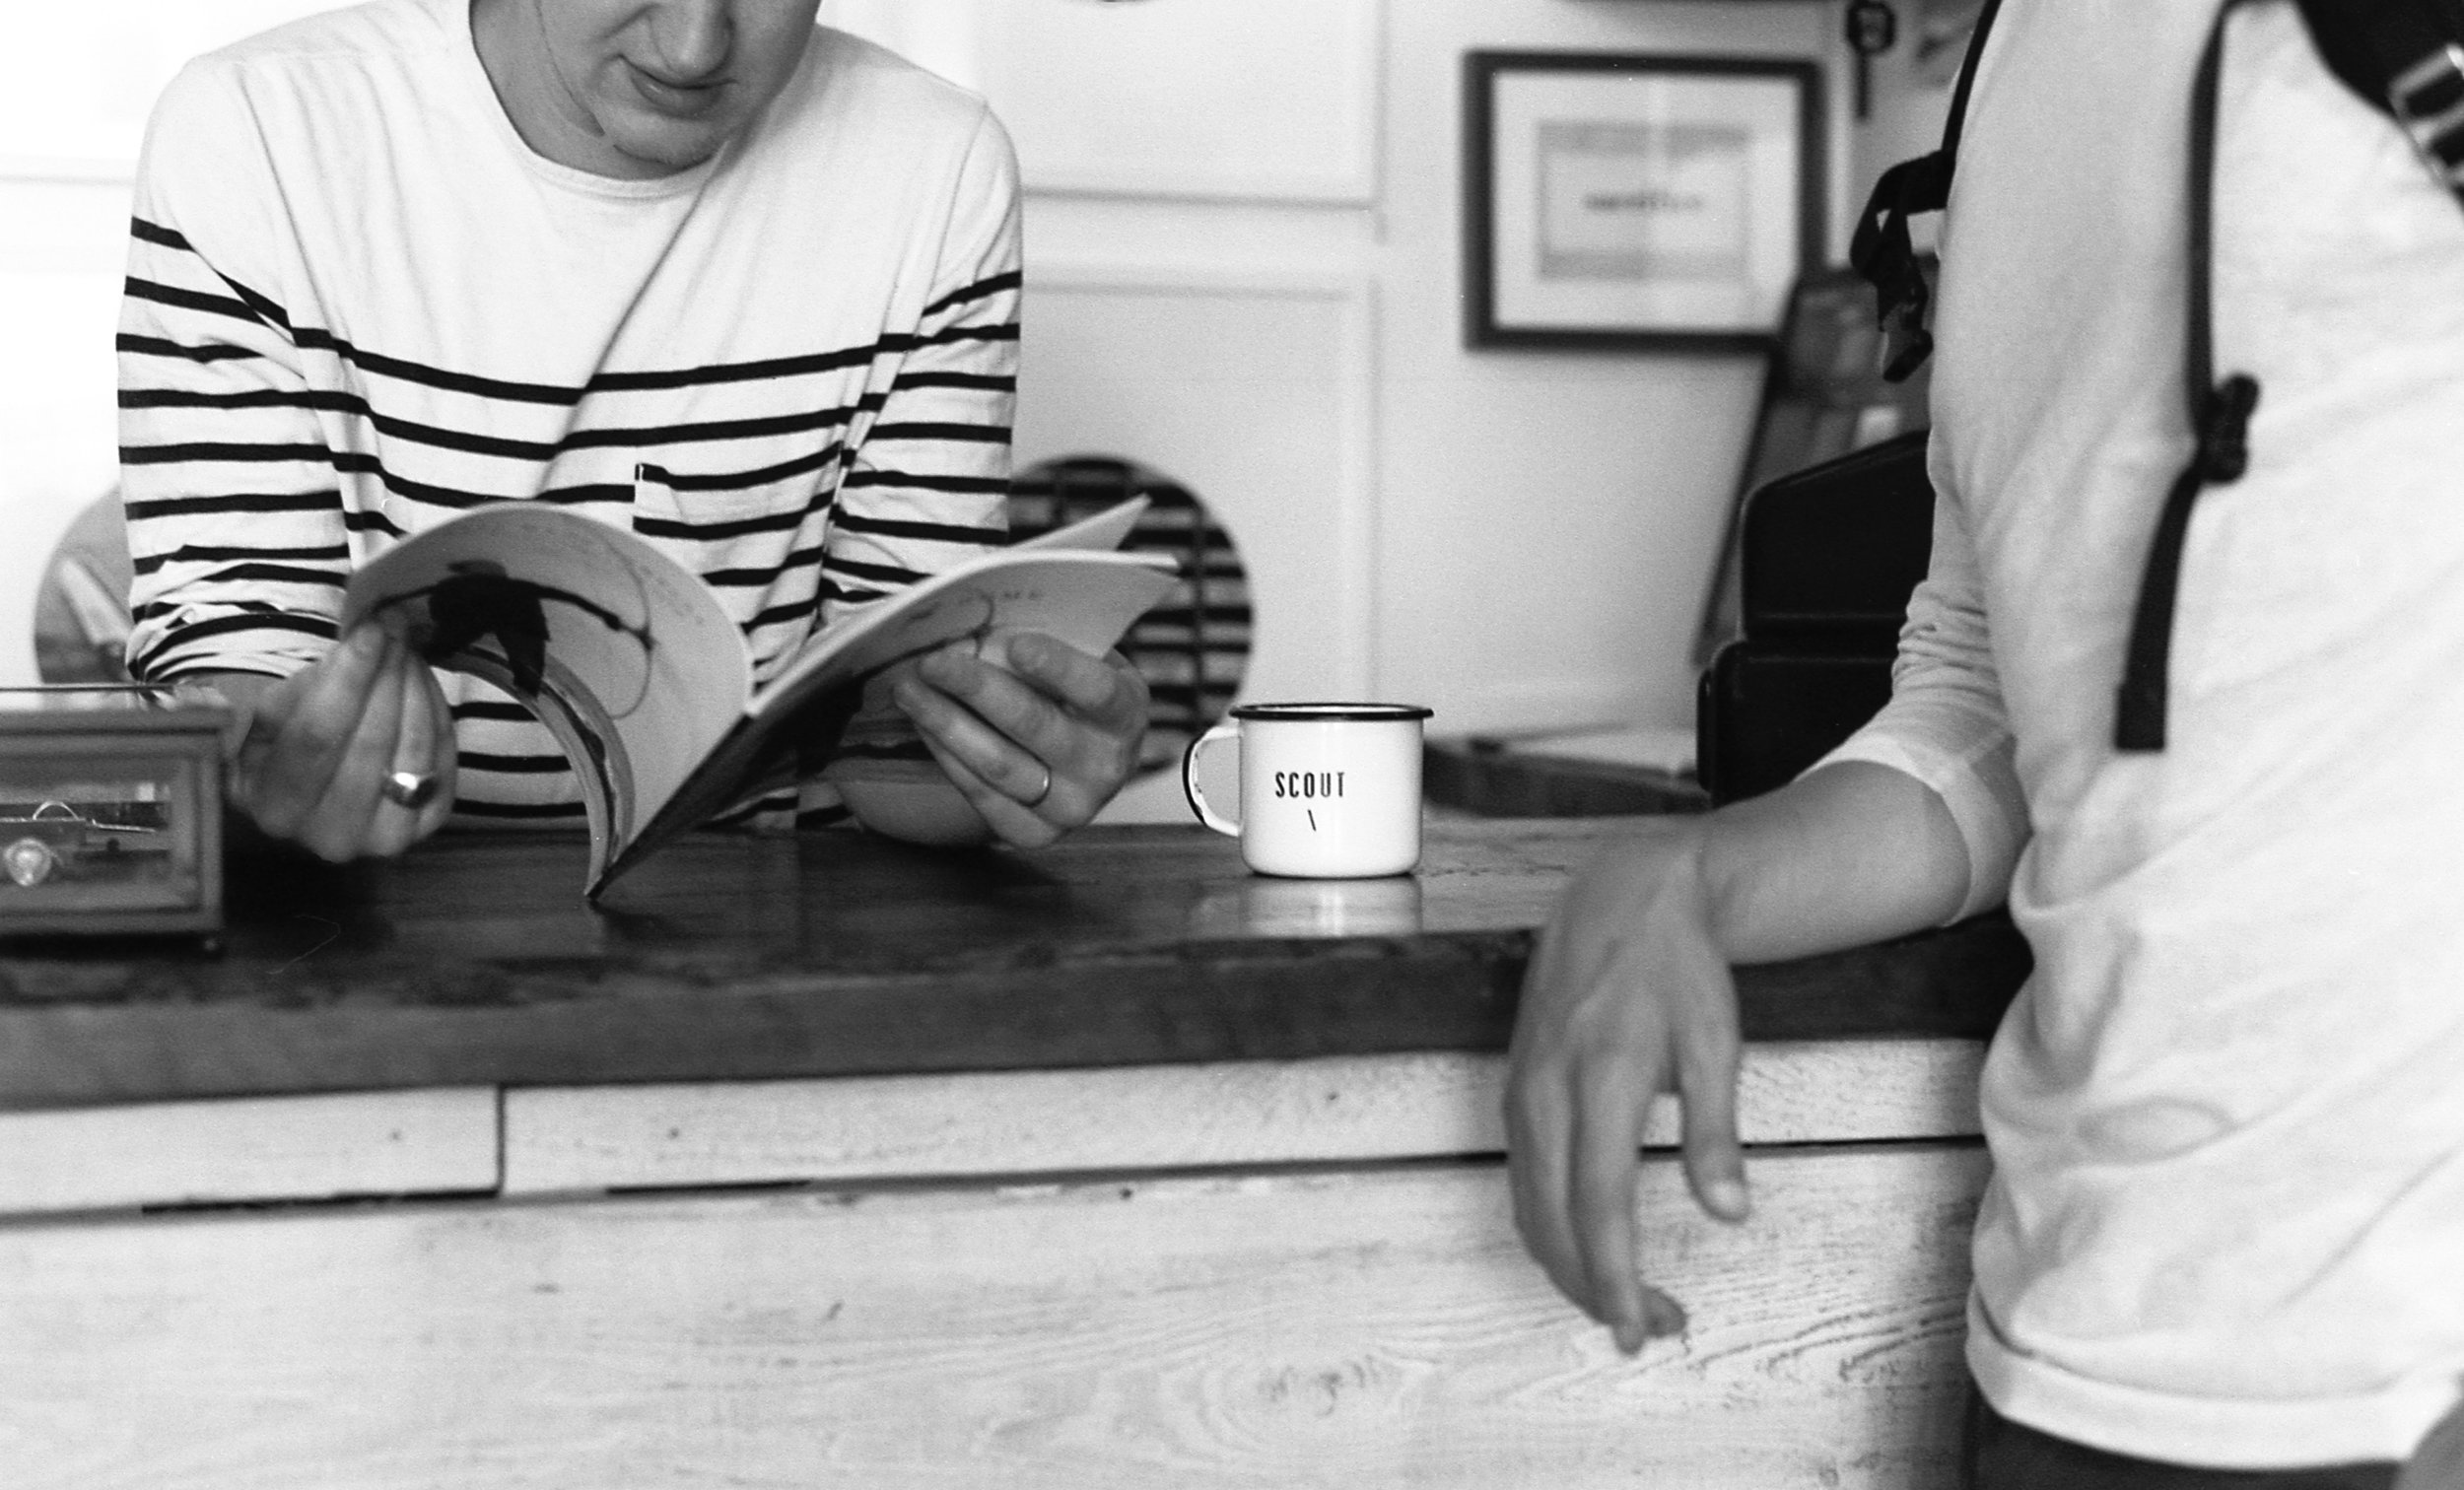 Two people lean against a coffee bar, one flips through a magazine